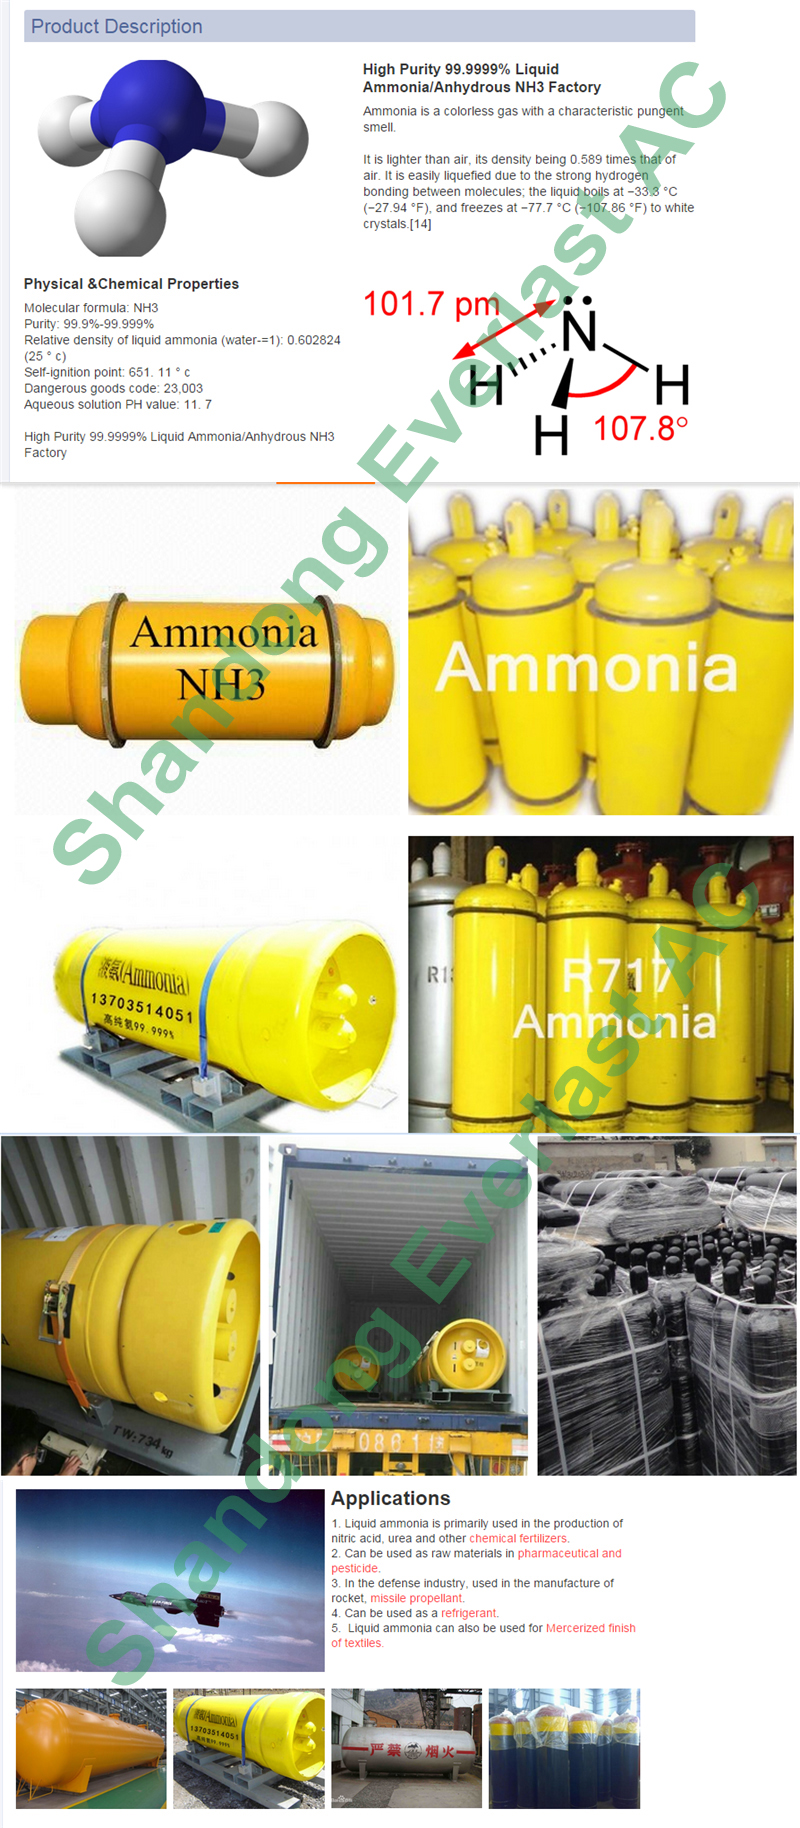 product description-1AMMONIA